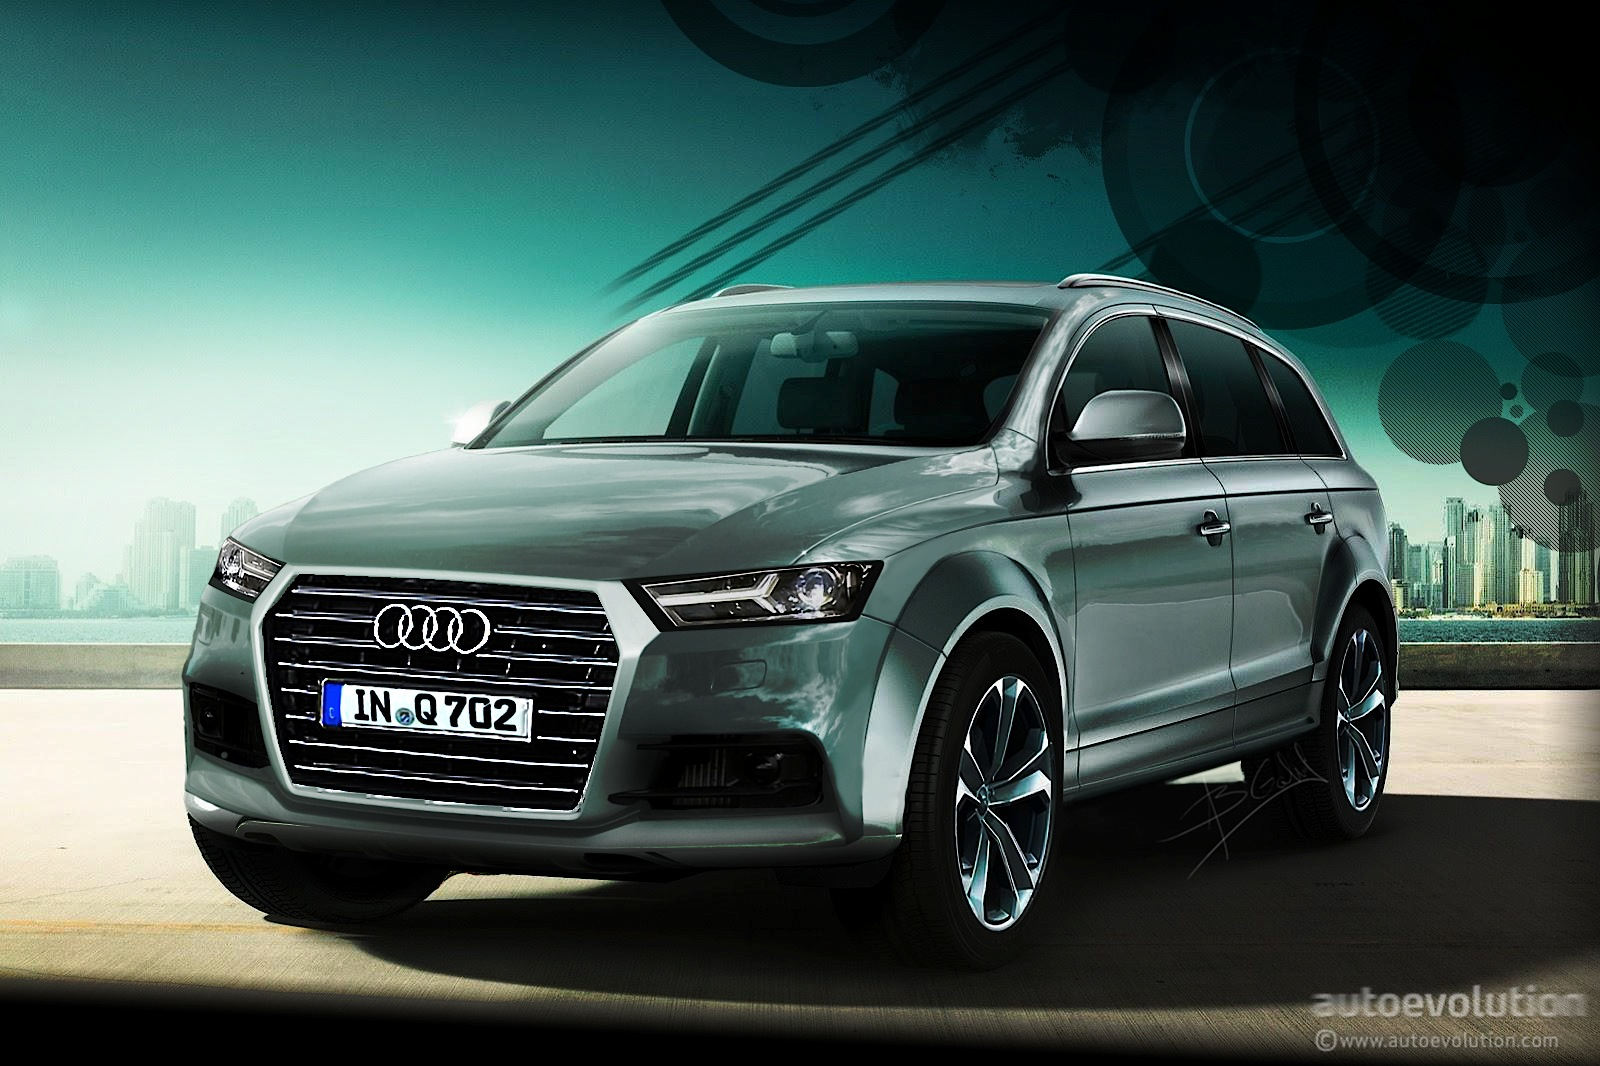 2015 audi q7 a new design language from ingolstadt autoevolution. Black Bedroom Furniture Sets. Home Design Ideas